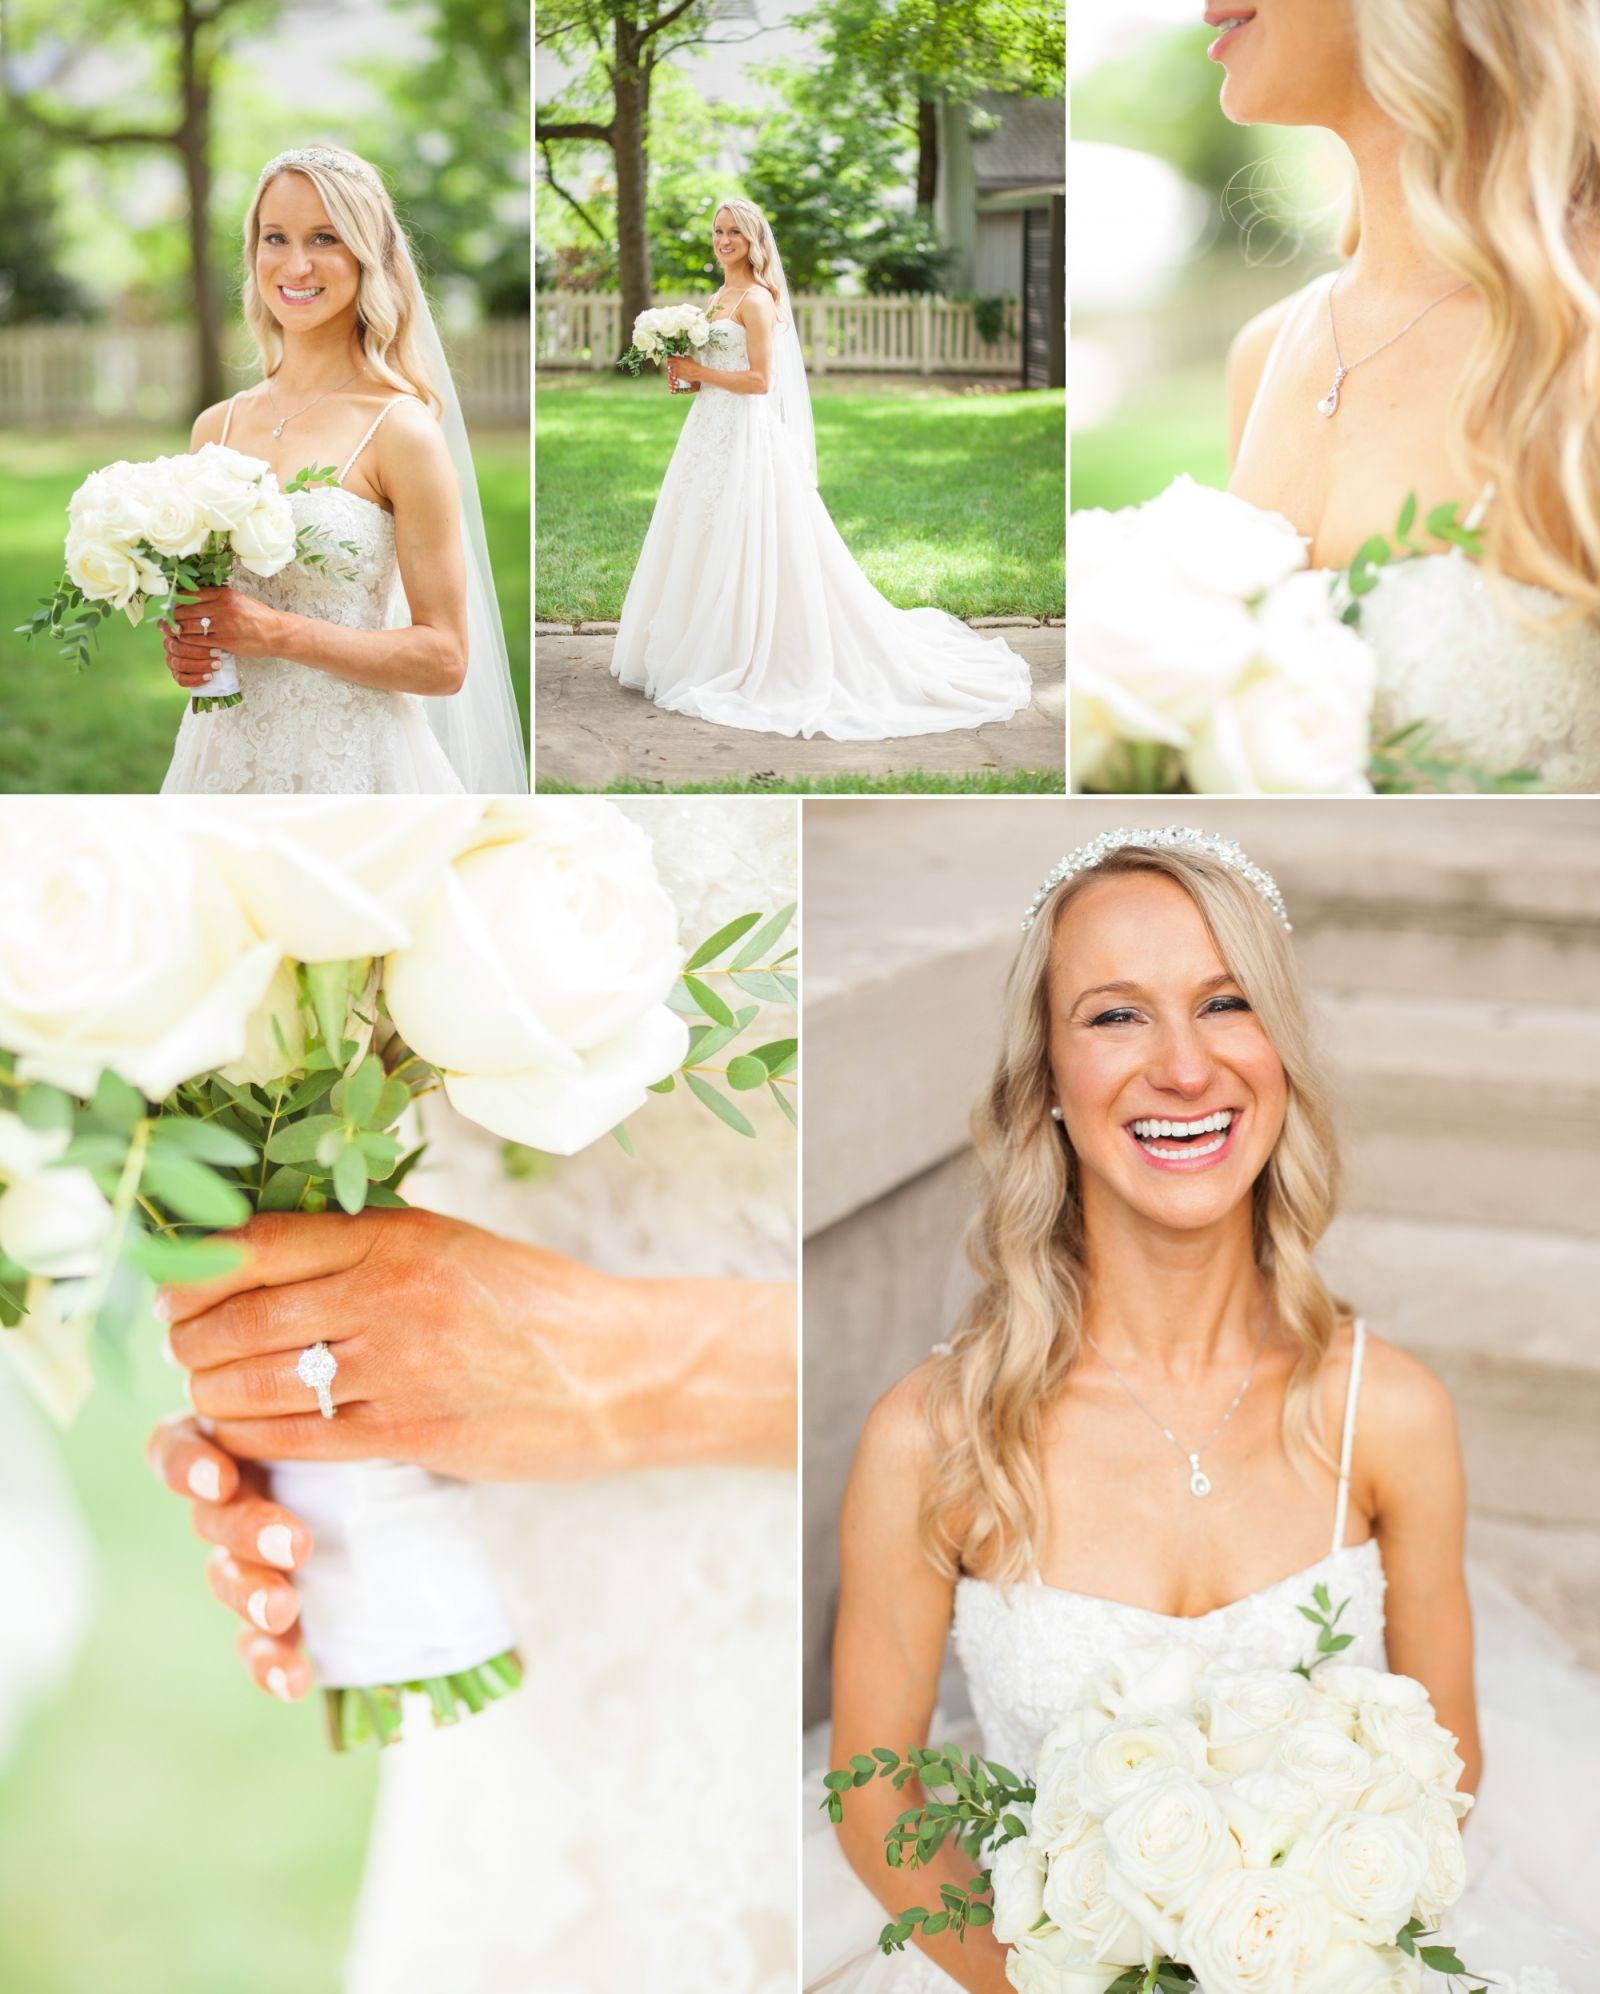 Wedding Hairstyle Nashville: Belle Meade Plantation Wedding In Nashville, TN...Classic